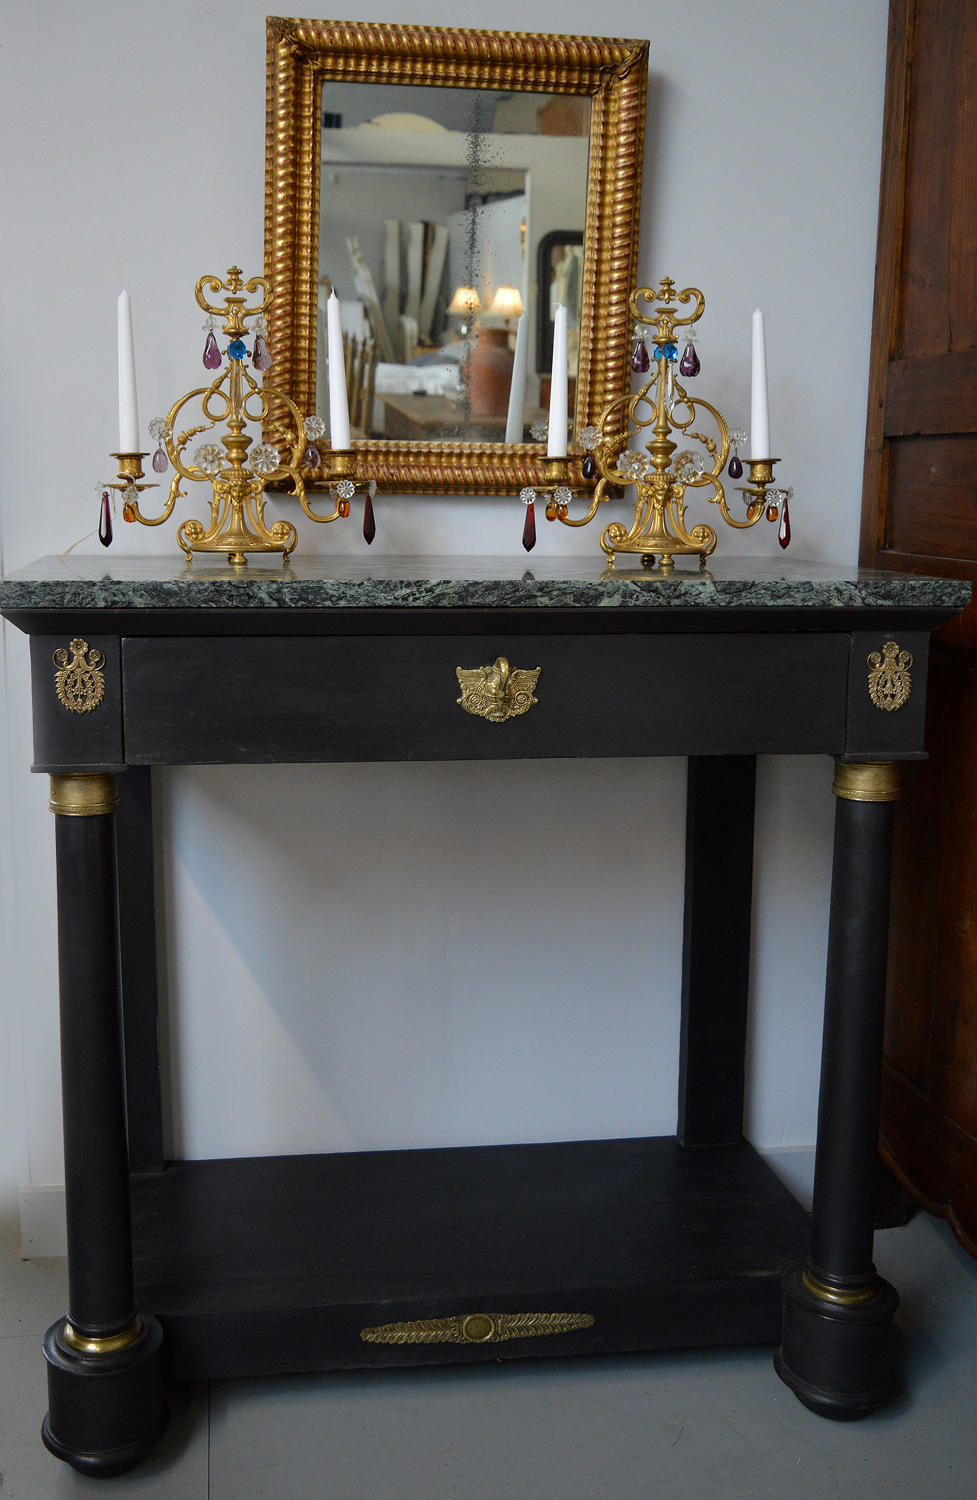 Late 19th Century Empire Console table